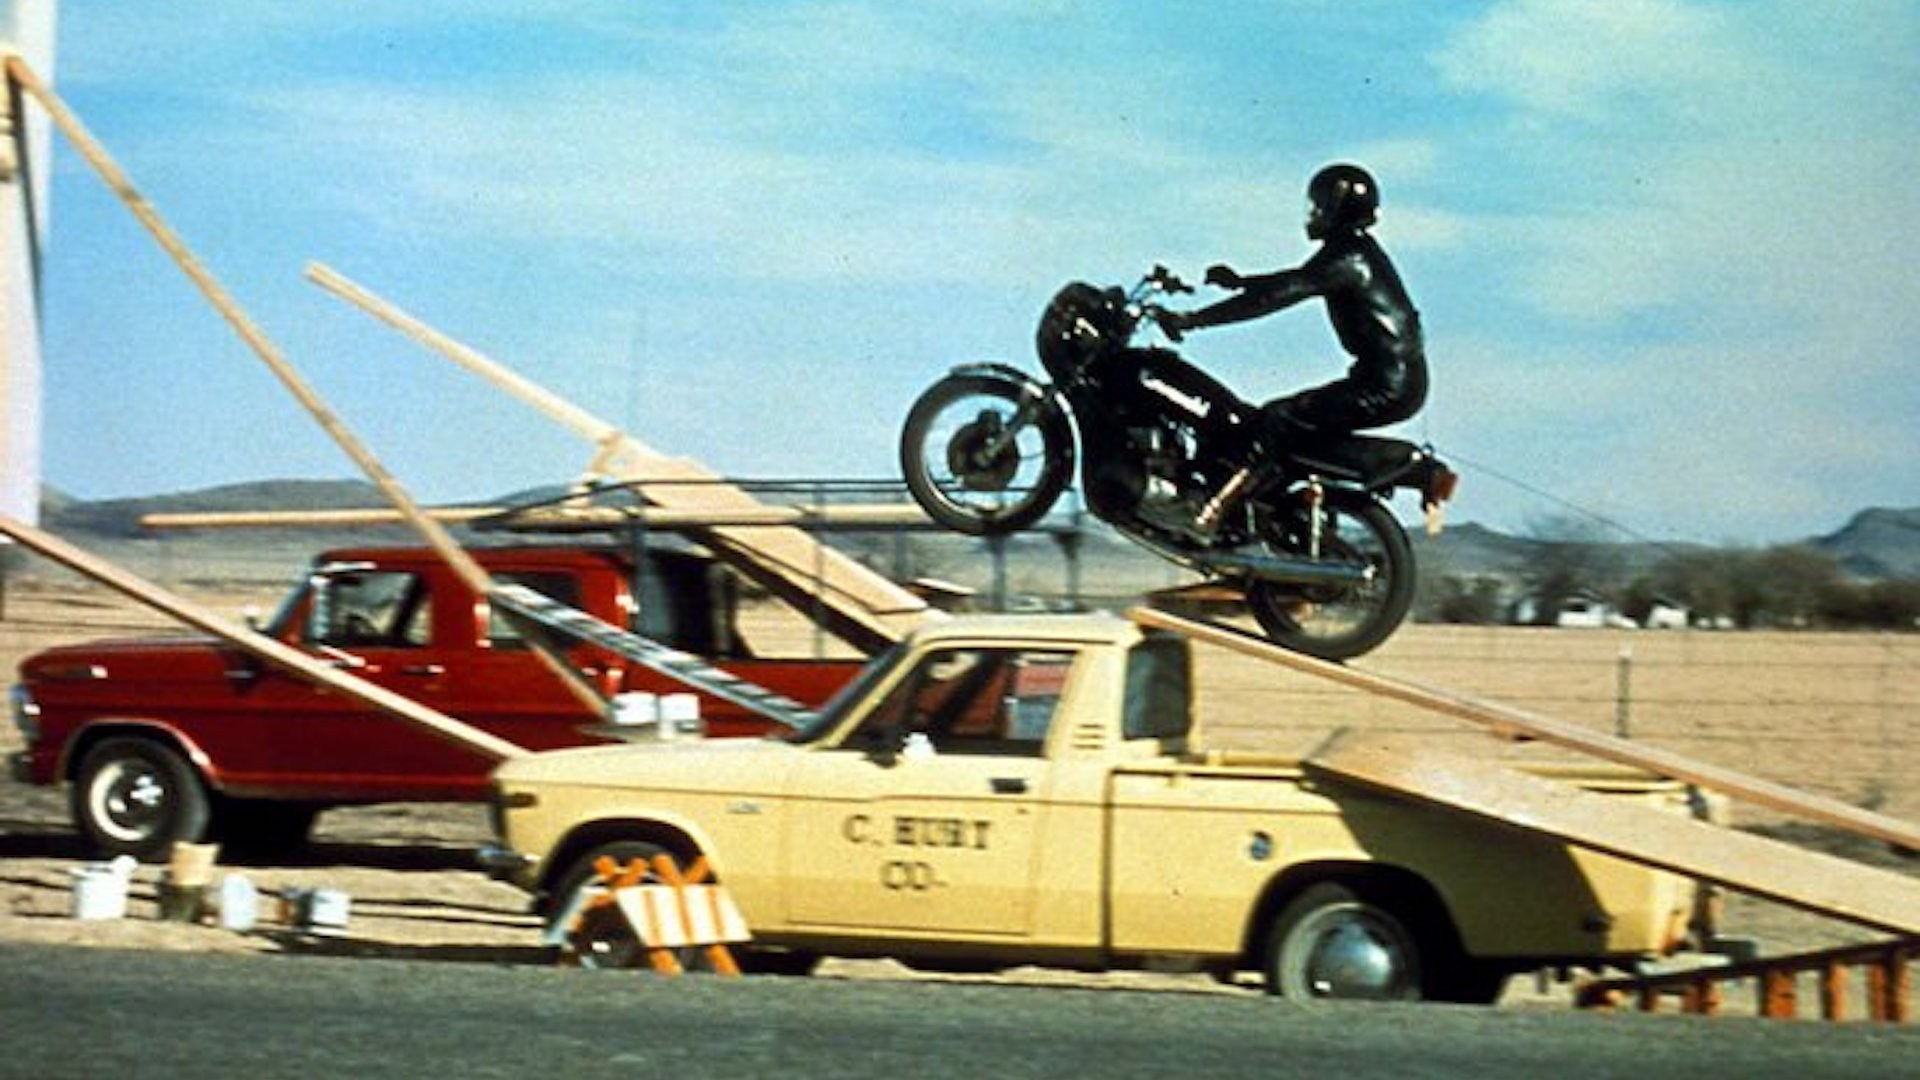 A motorcyclist completes a jump stunt over a truck in The Gumball Rally